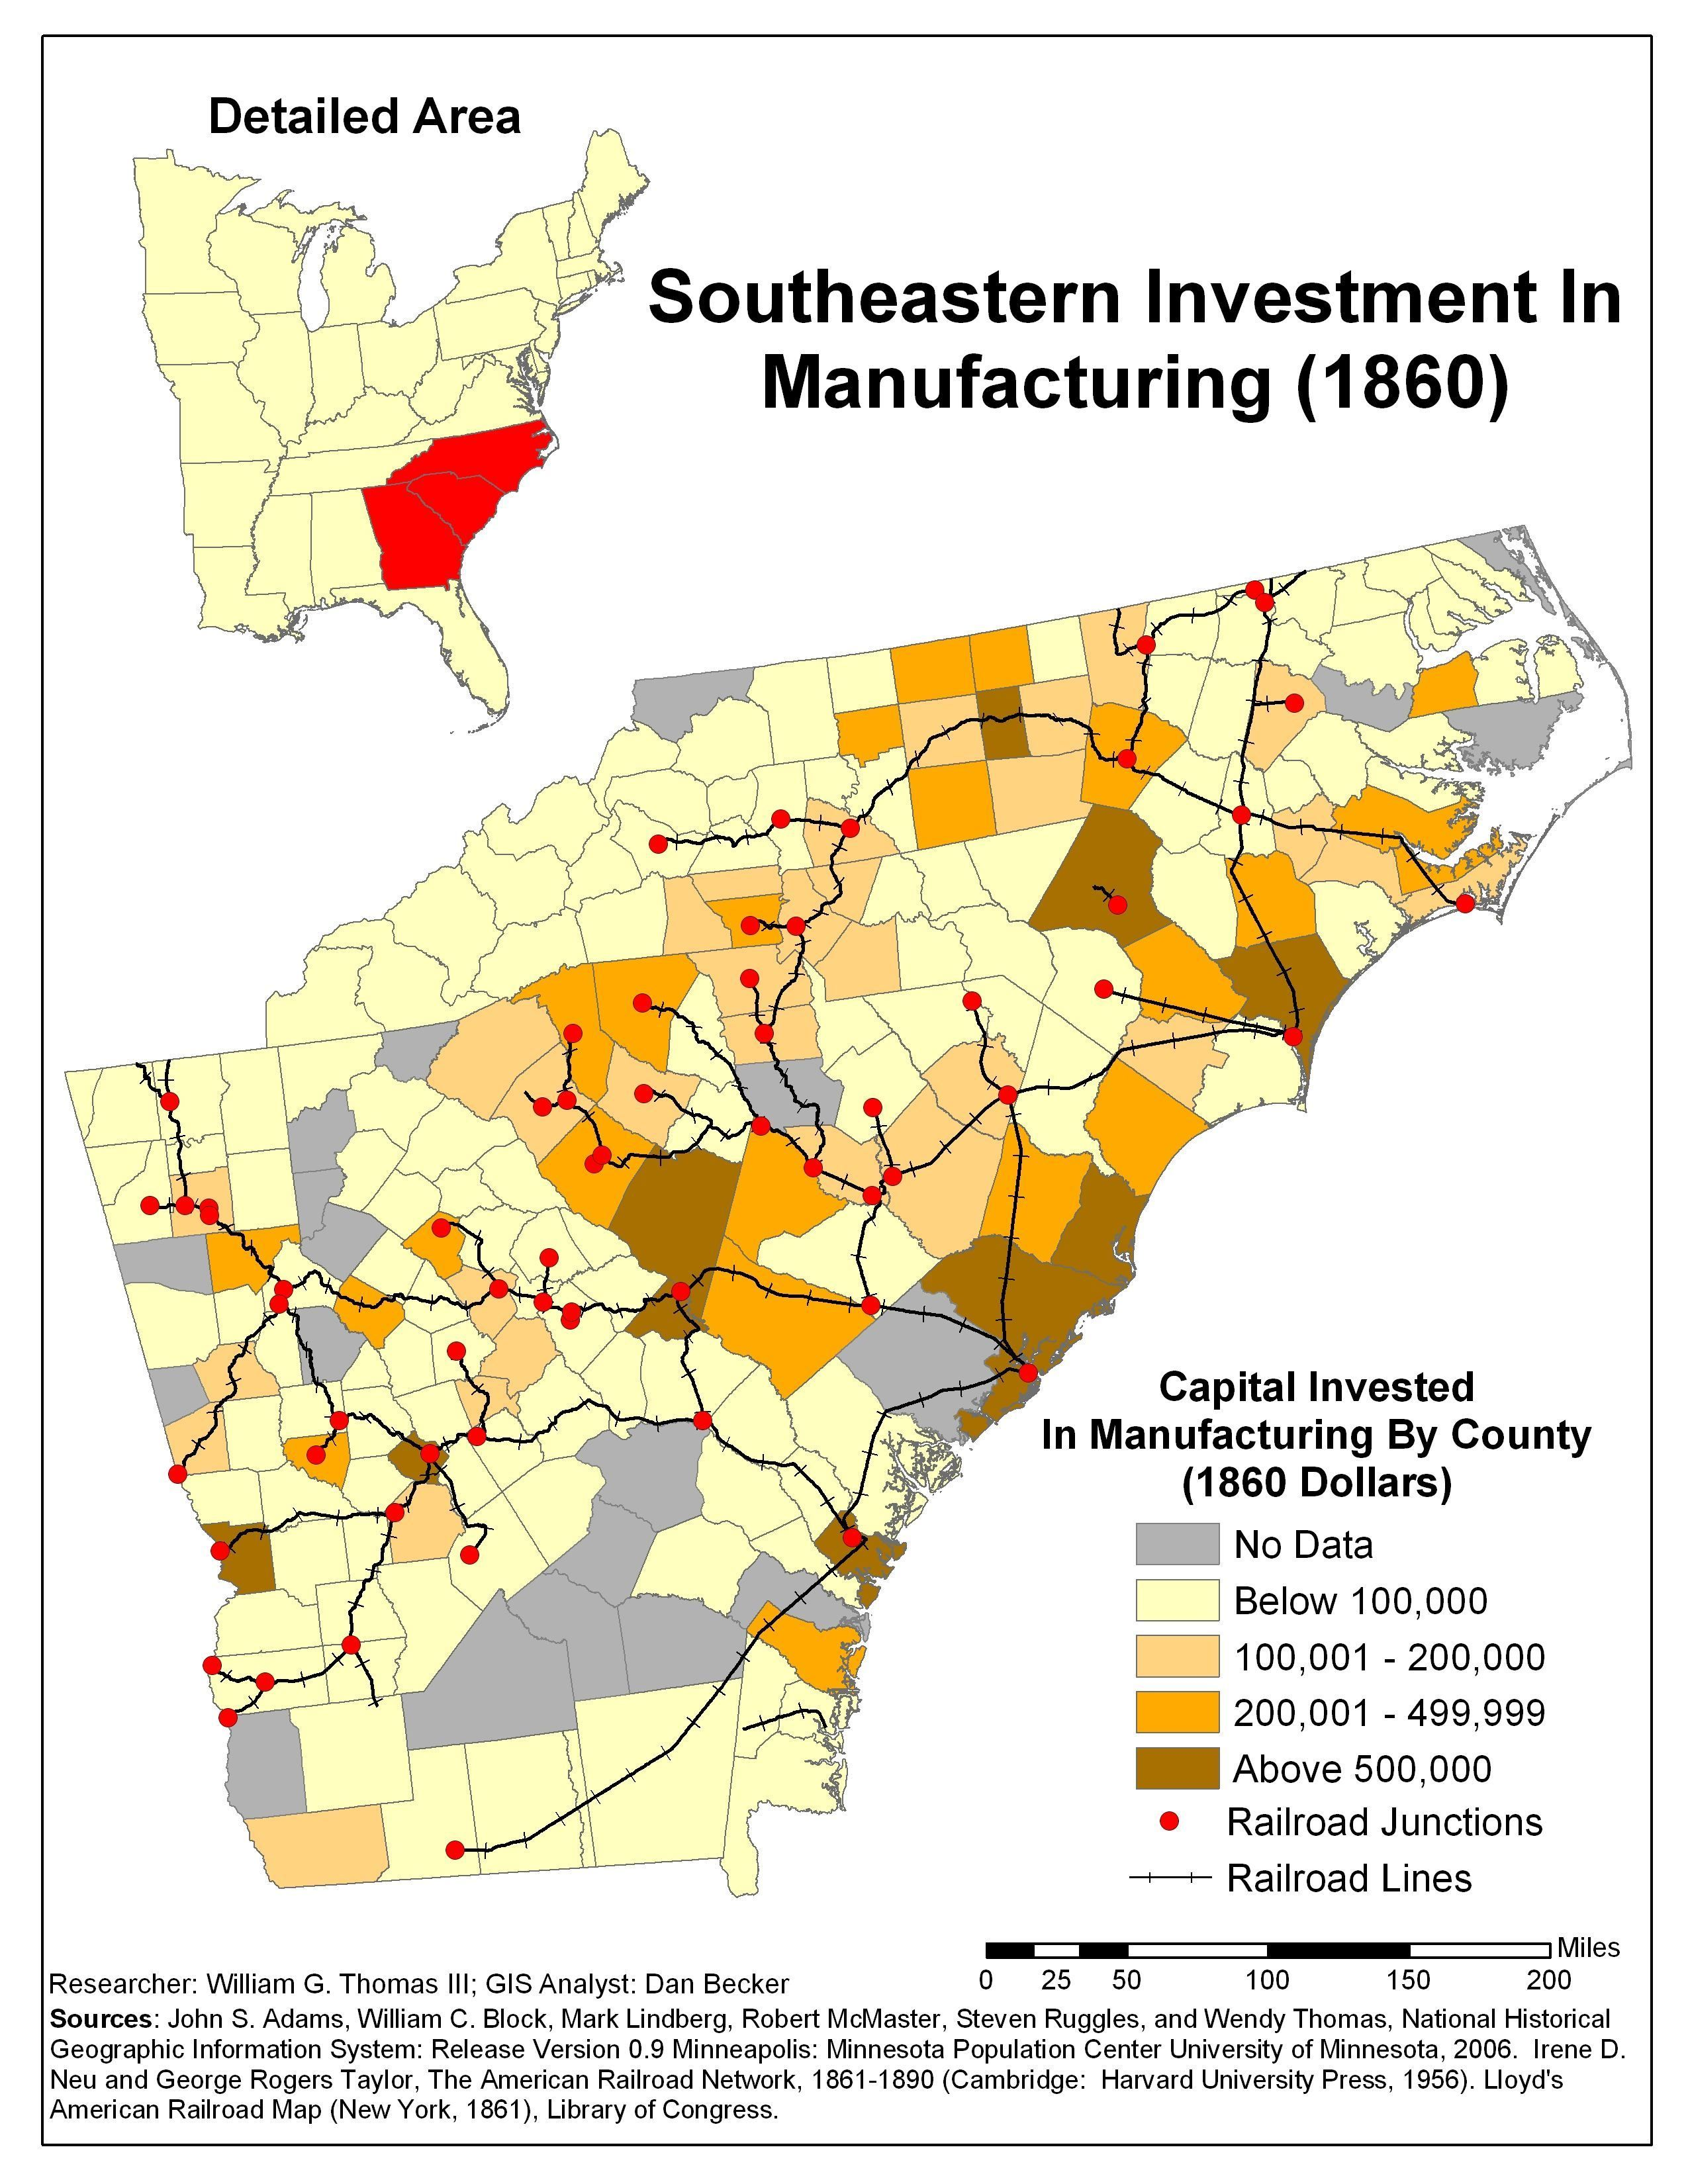 Southeastern Investment In Manufacturing